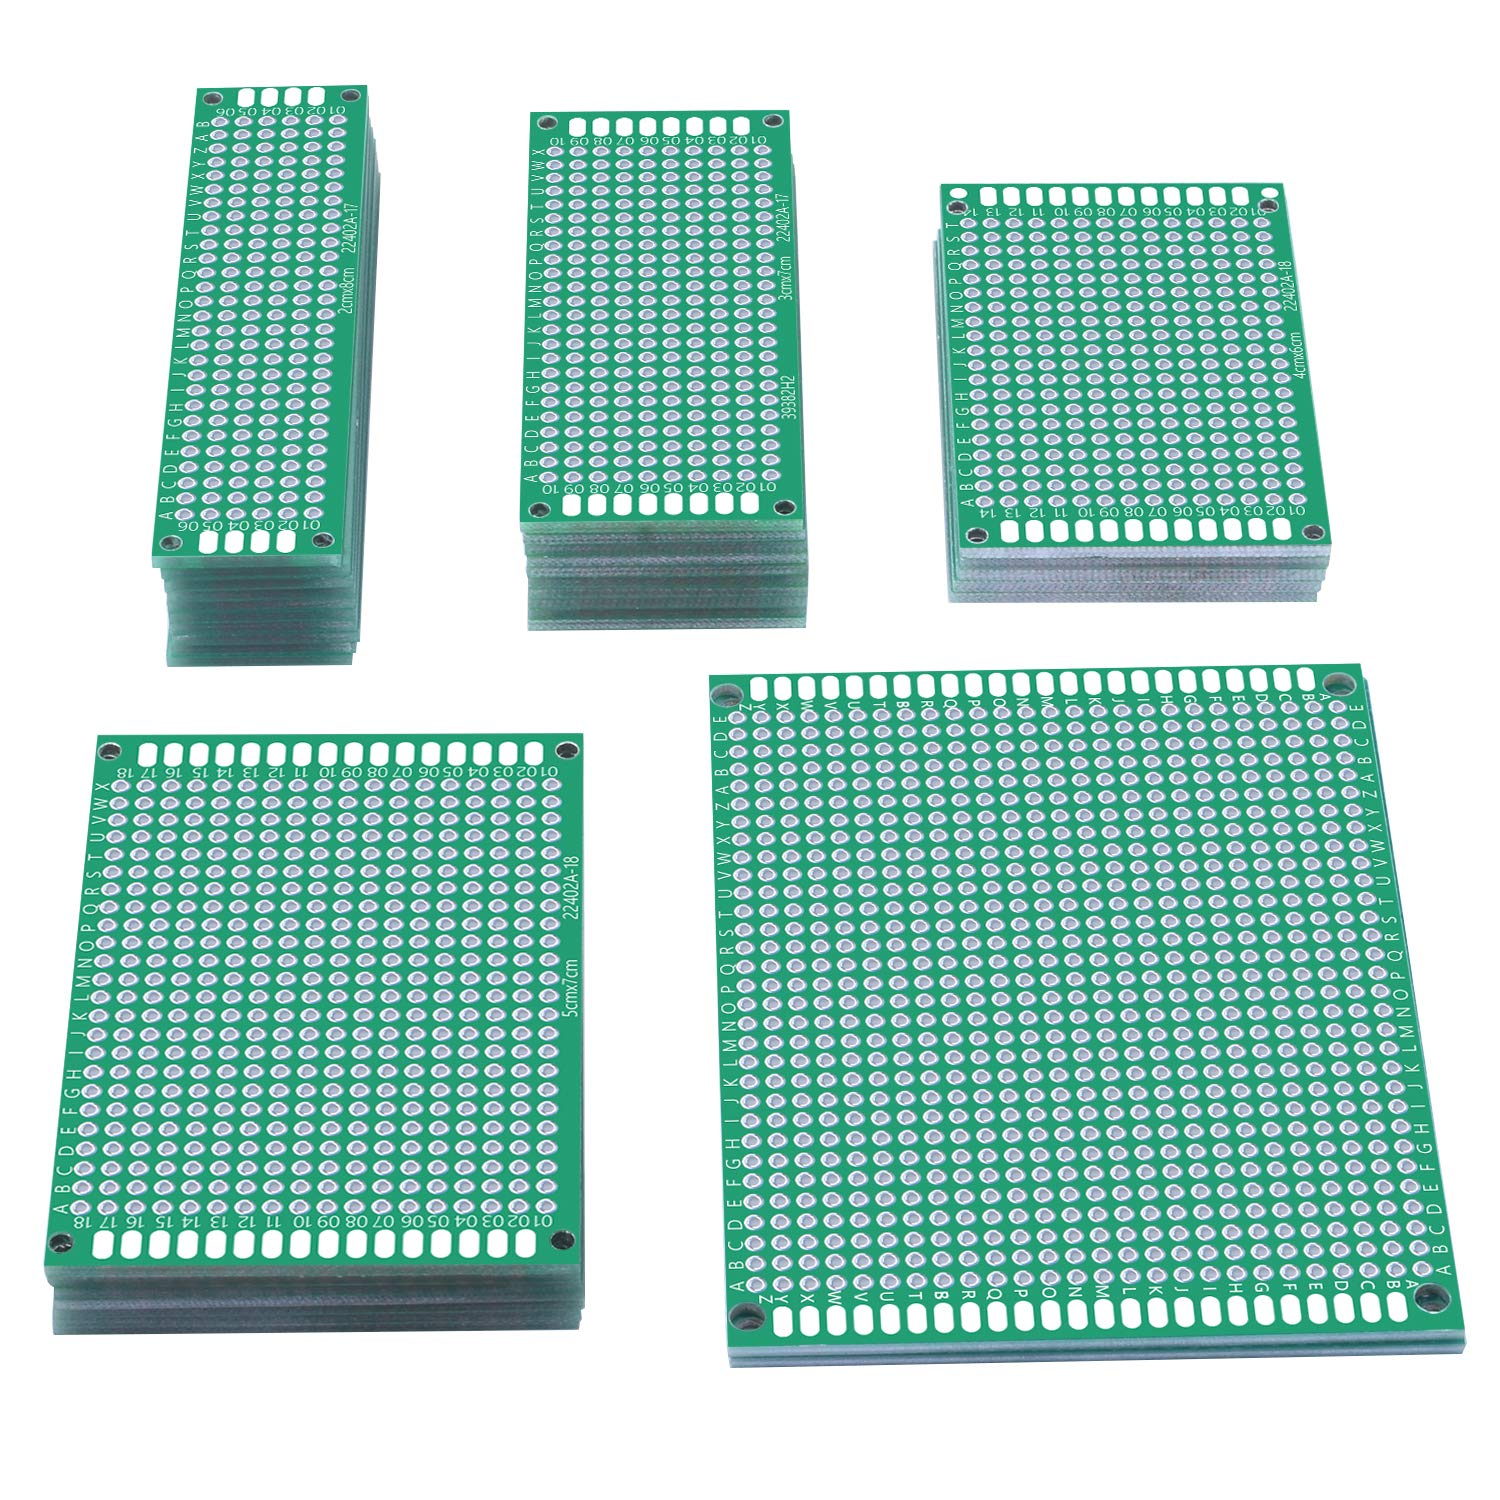 UNIROI 35pcs Double Sided PCB Board Prototype Kit, 5 Sizes Universal Printed Circuit Board for DIY Soldering and Electronic Project UA042